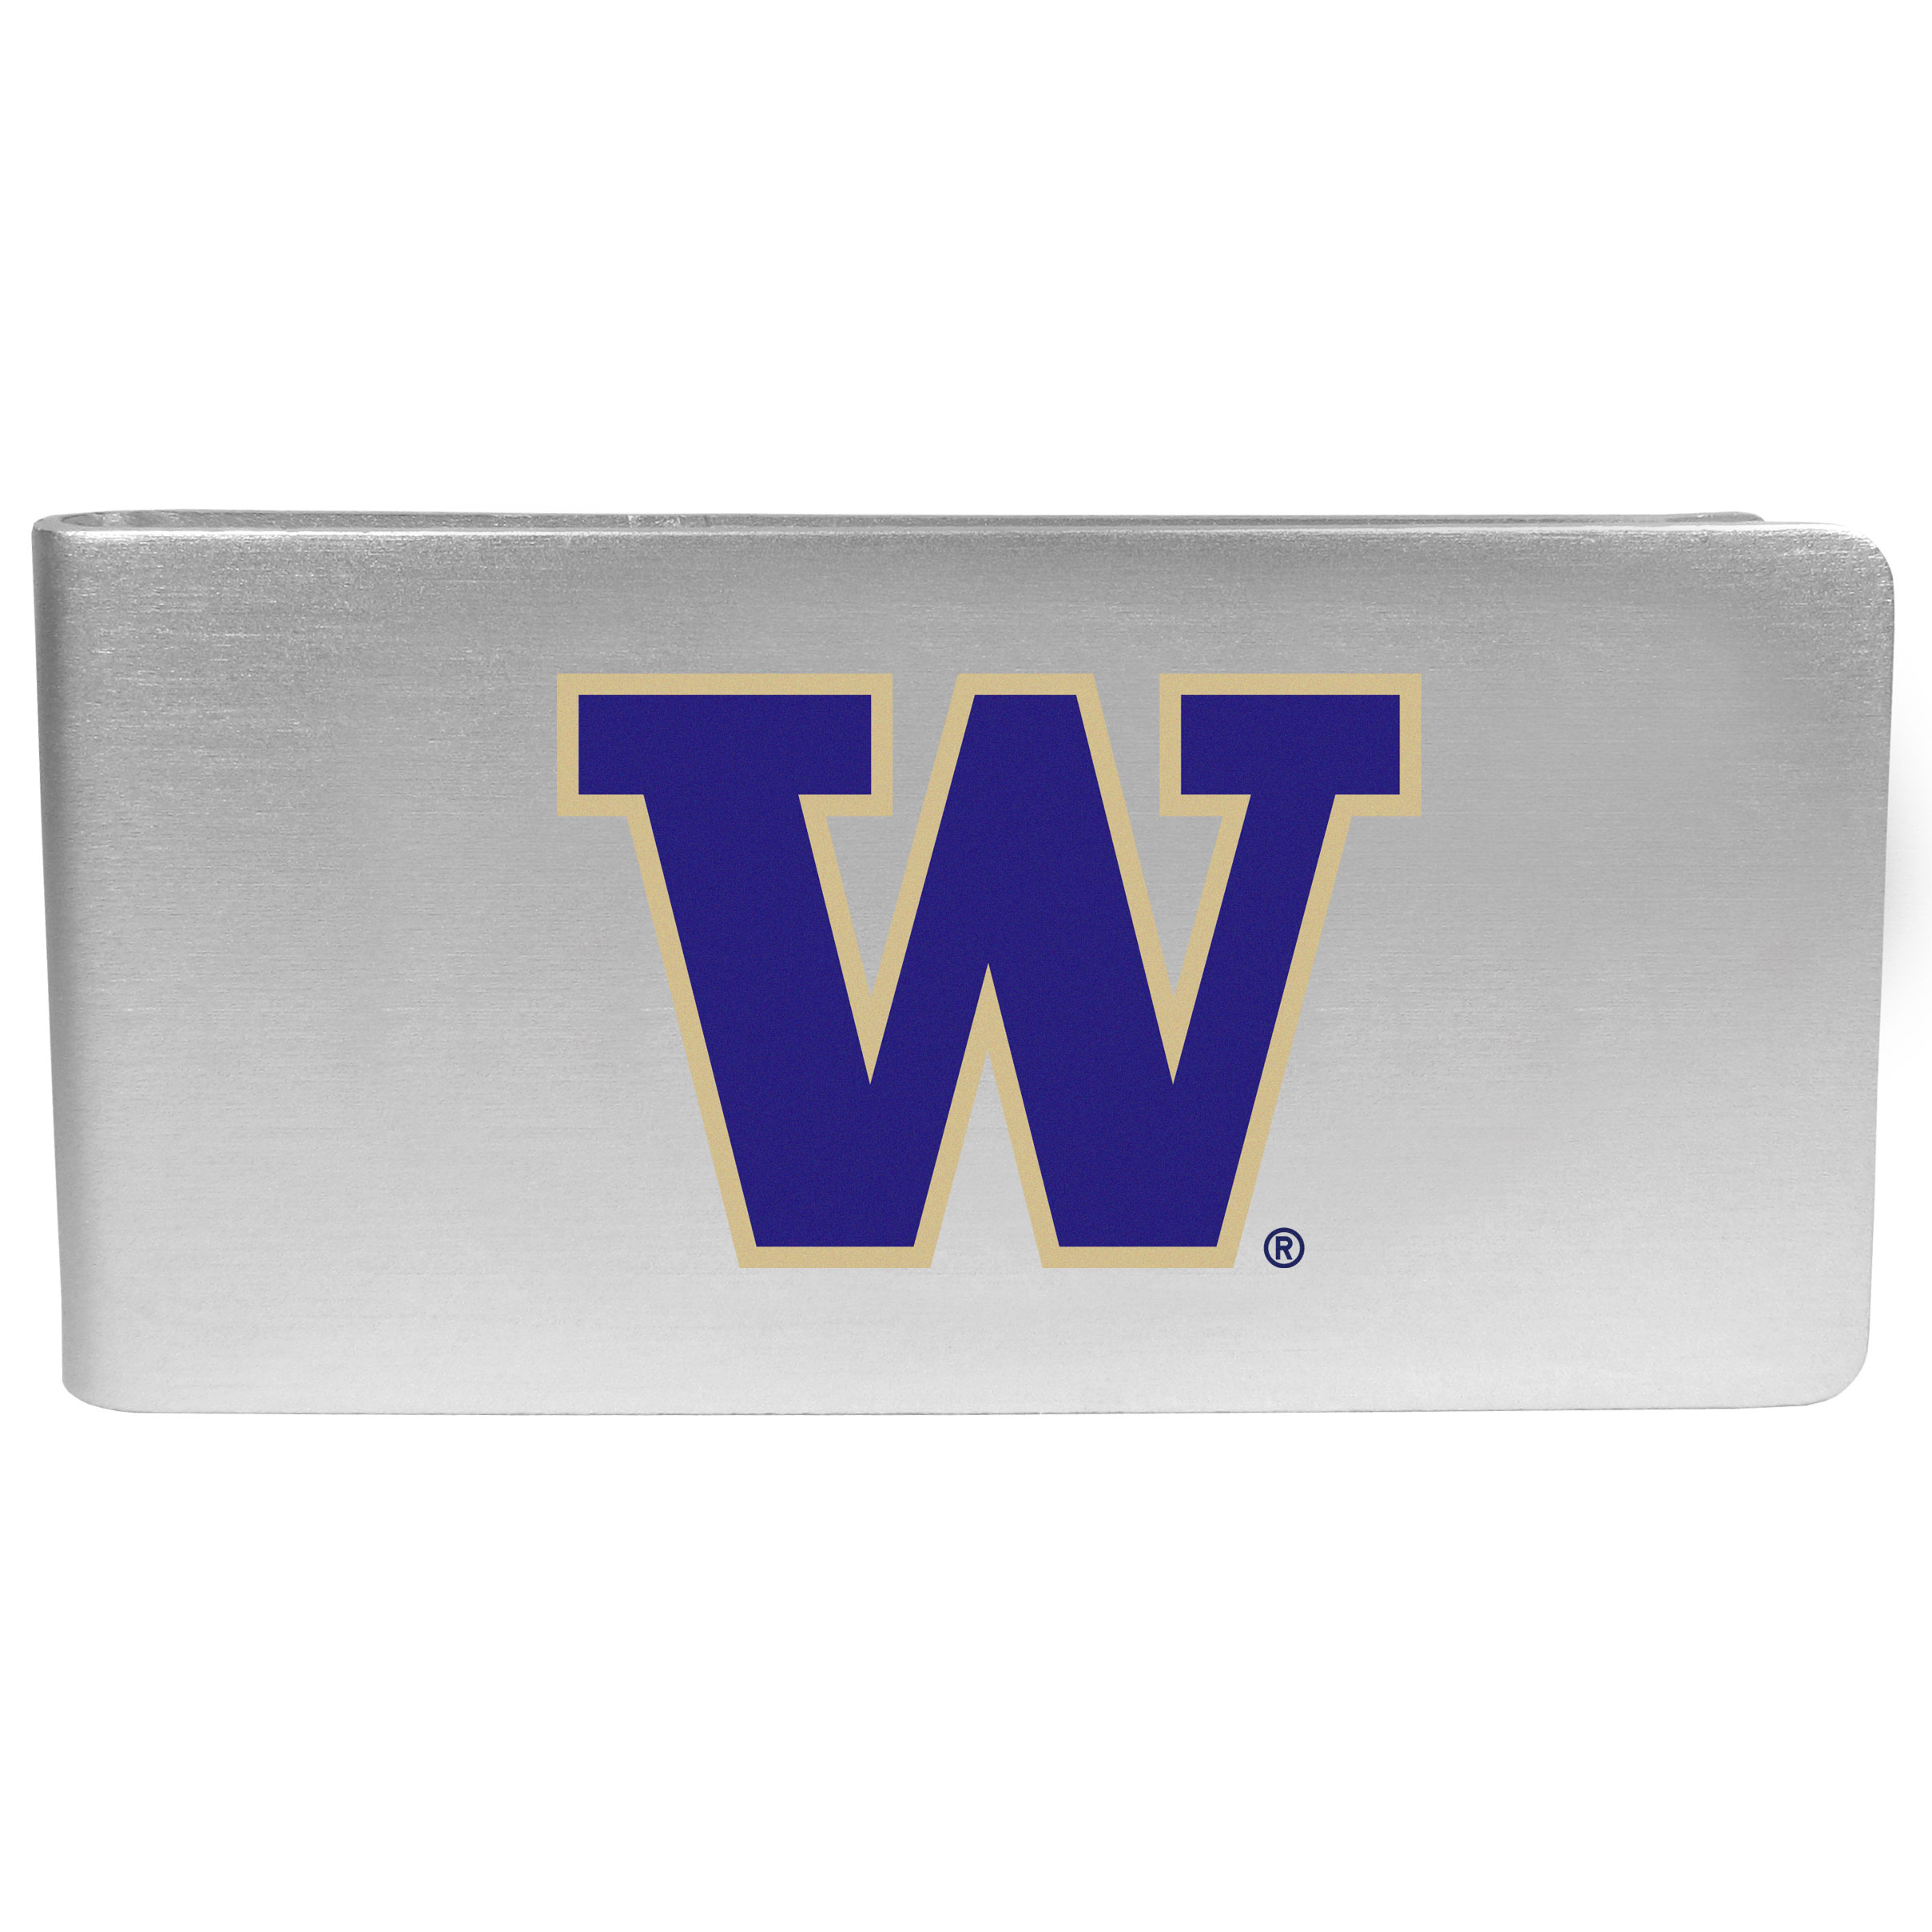 Washington Huskies Logo Money Clip - Our brushed metal money clip has classic style and functionality. The attractive clip features the Washington Huskies logo expertly printed on front.